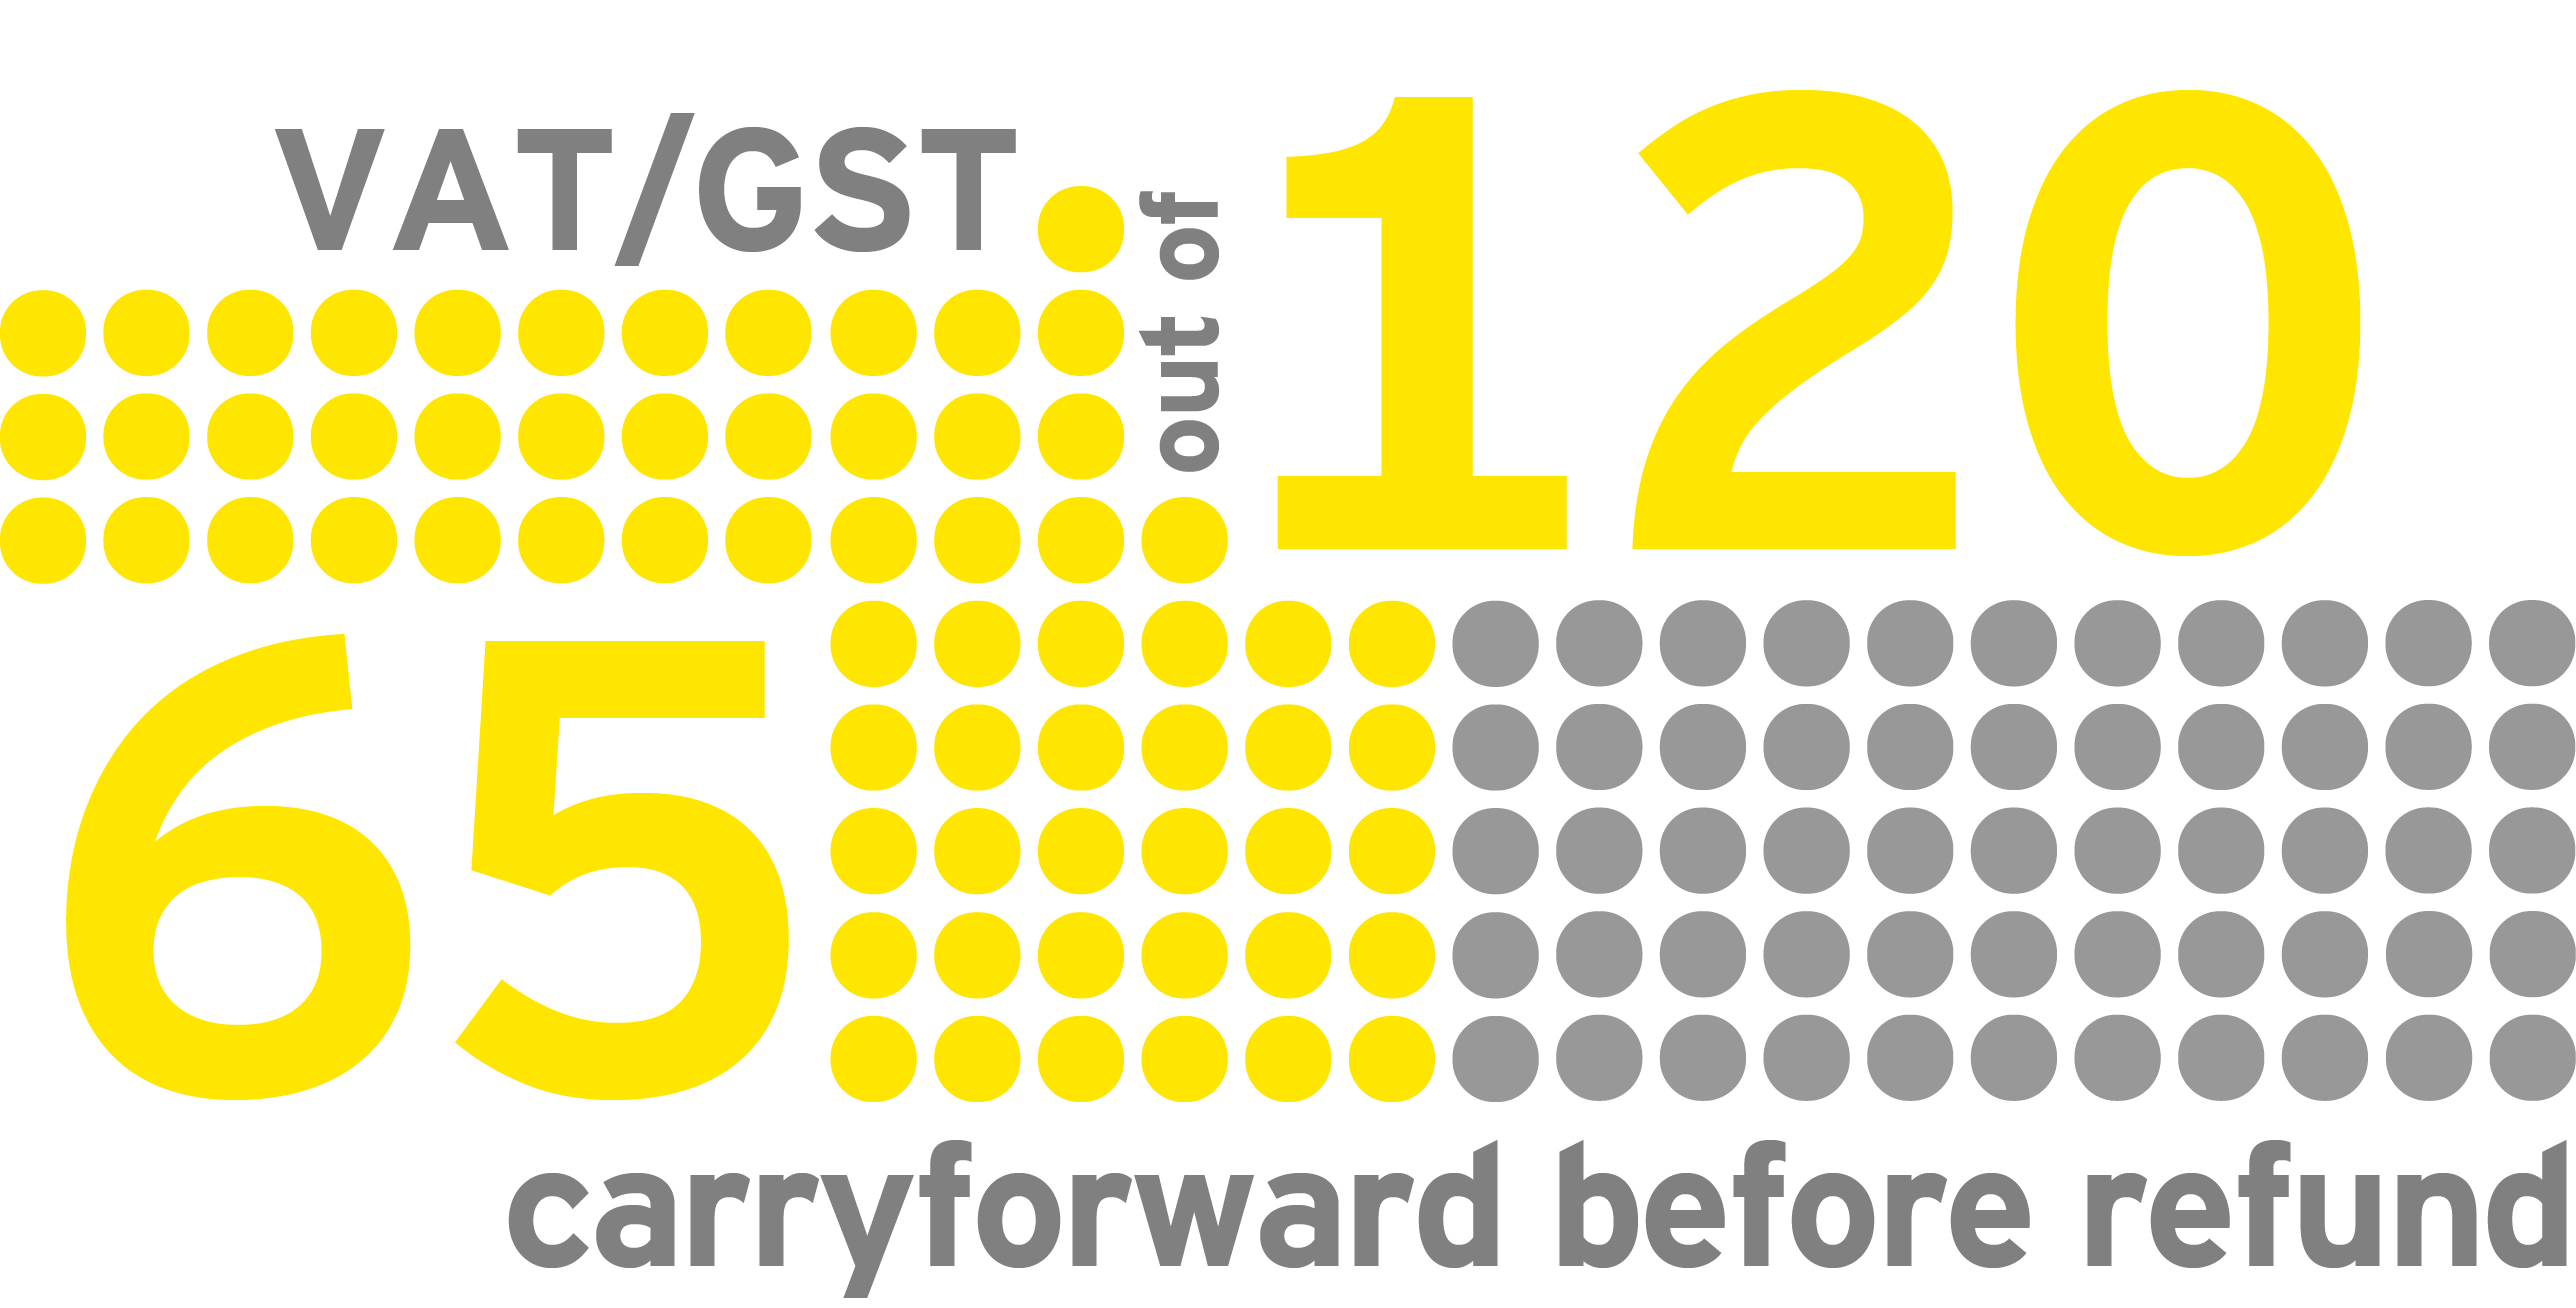 EY - Carryforward before refund